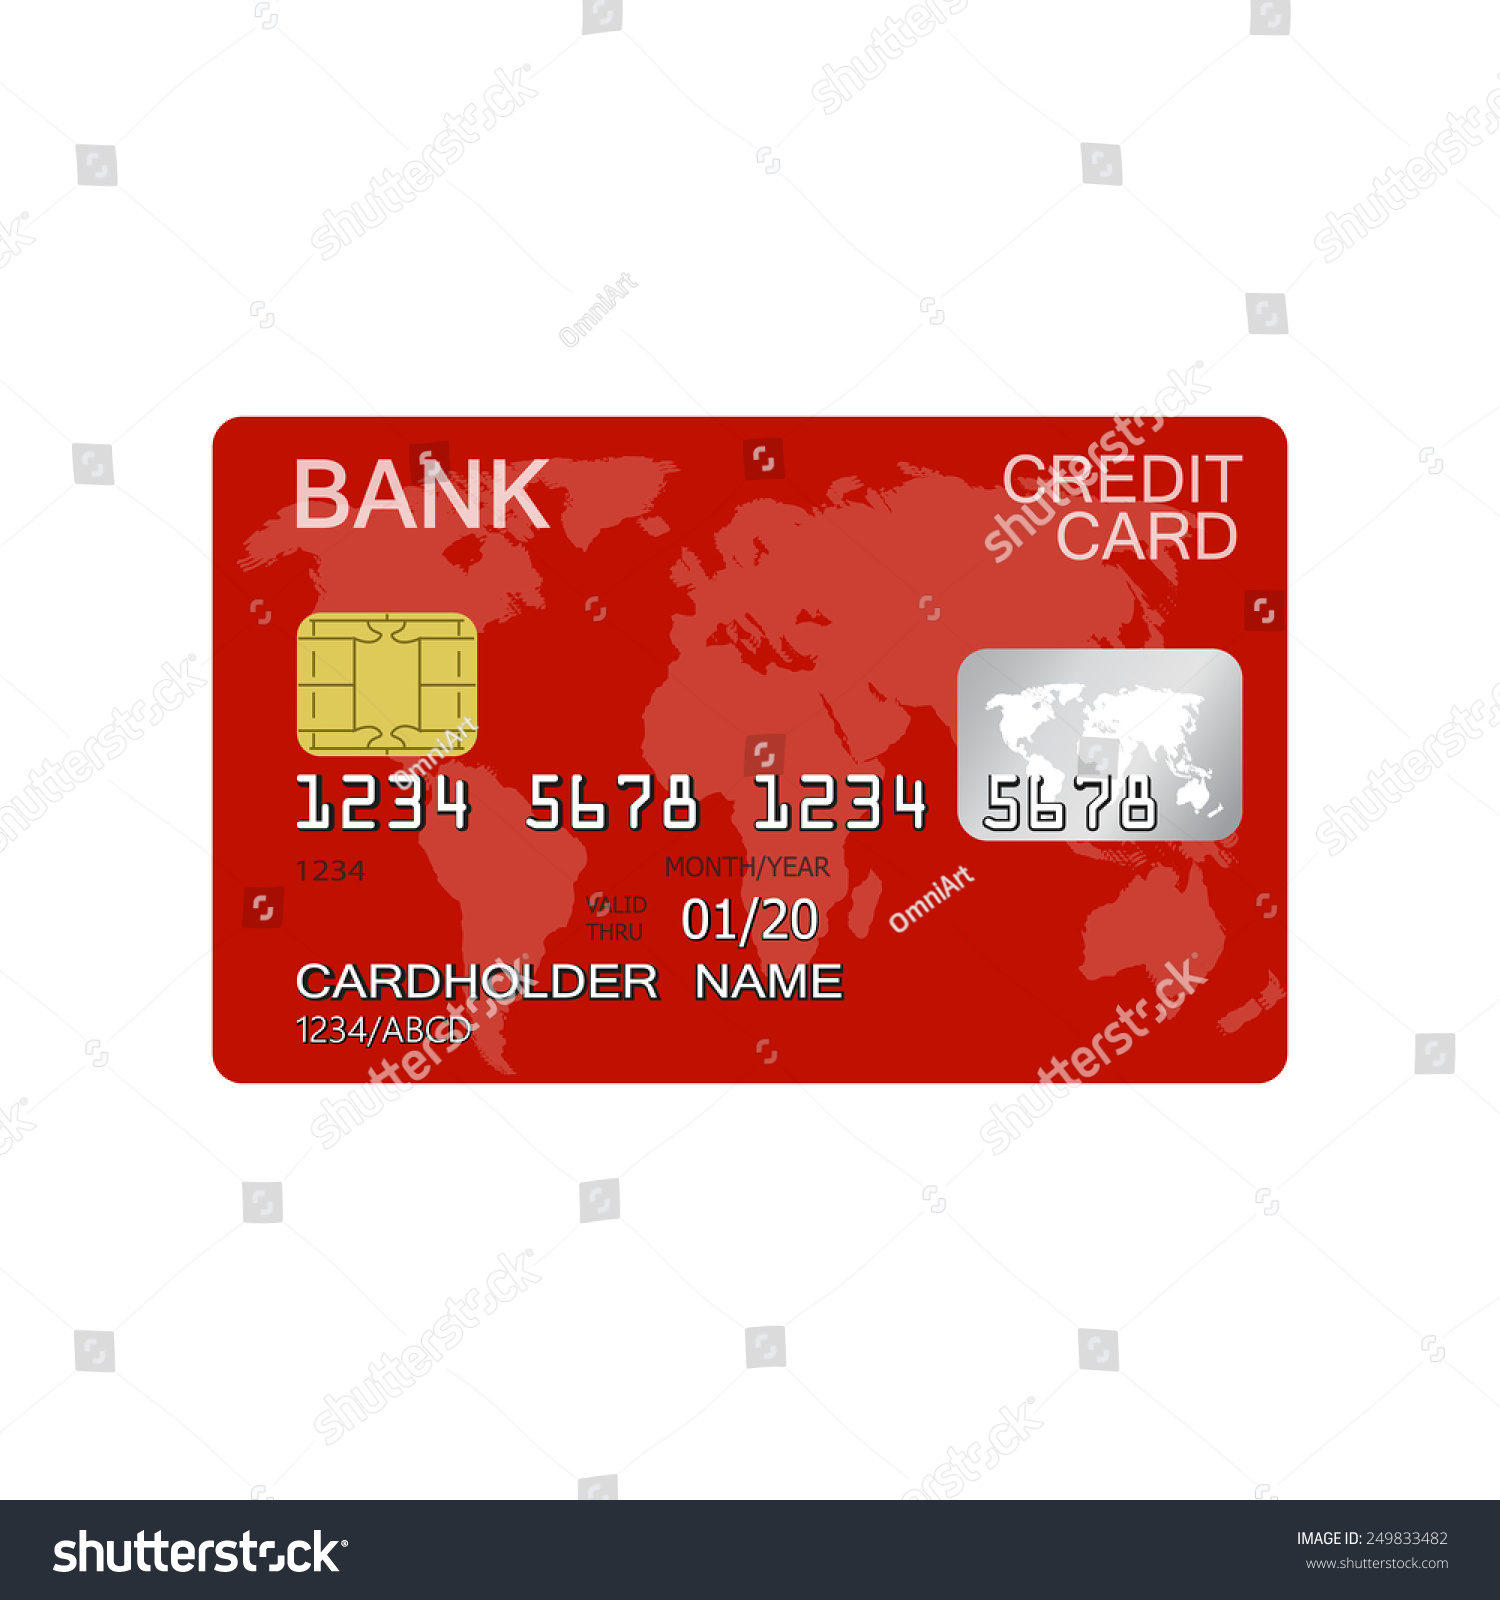 Corporate business credit cards images free business cards corporate business credit cards images free business cards detailed credit card isolated on white stock vector magicingreecefo Choice Image